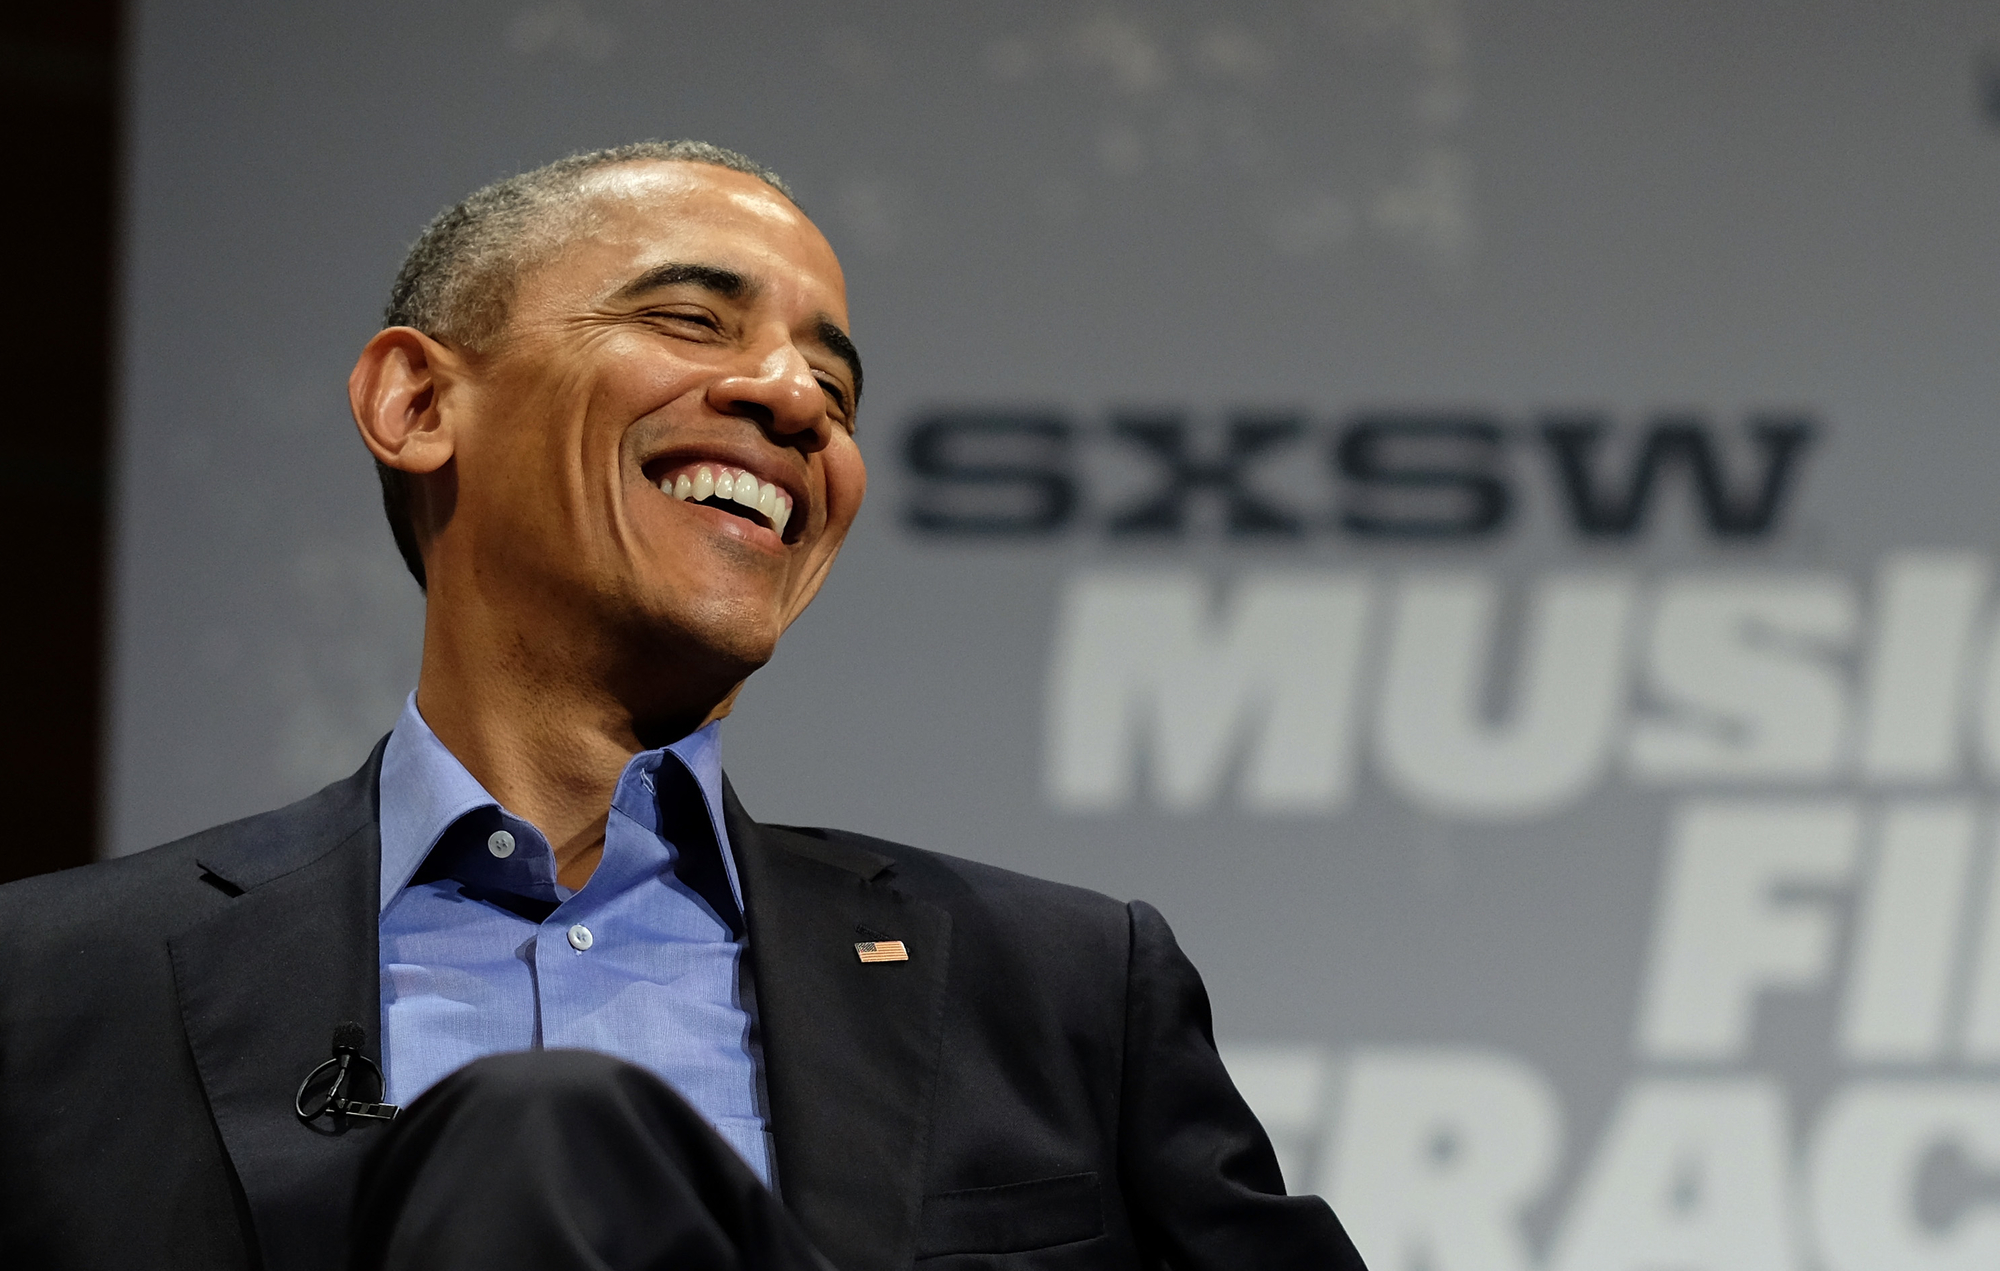 Barack Obama shares his top songs of 2020 with new Spotify playlist